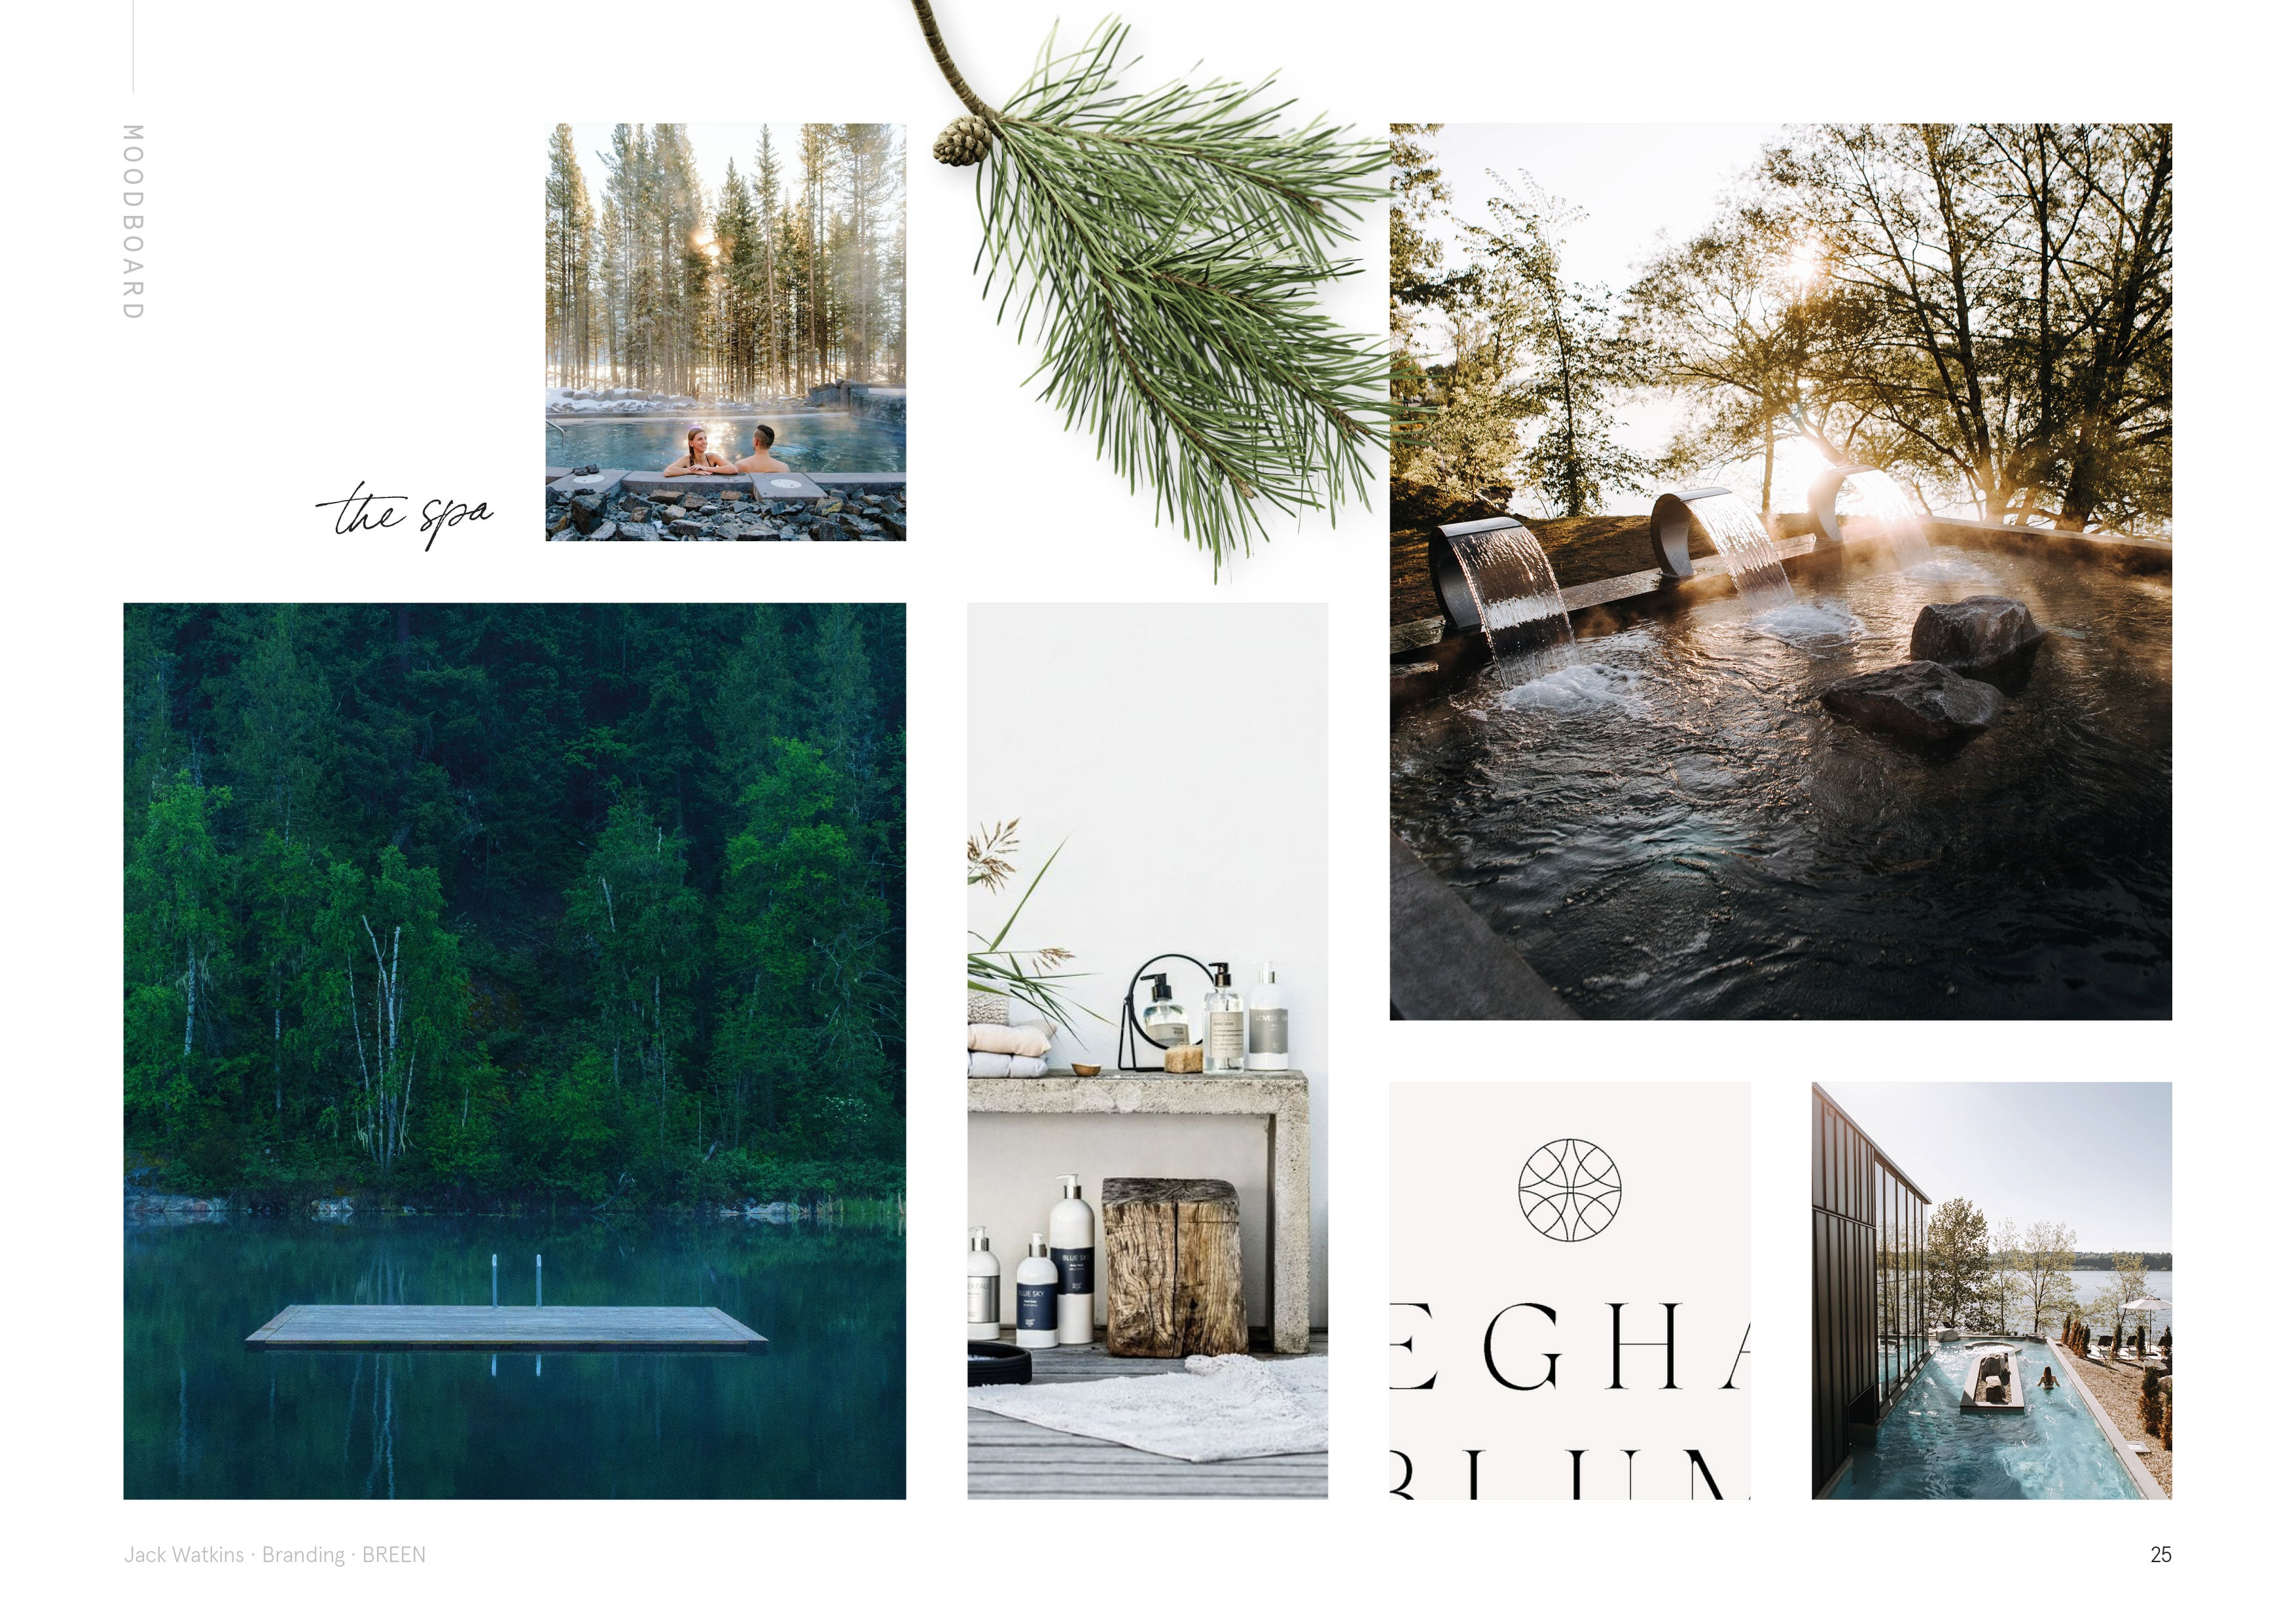 Nordic spa moodboard for Geirangerfjord hotel and spa, BREEN, designed by Jack Watkins